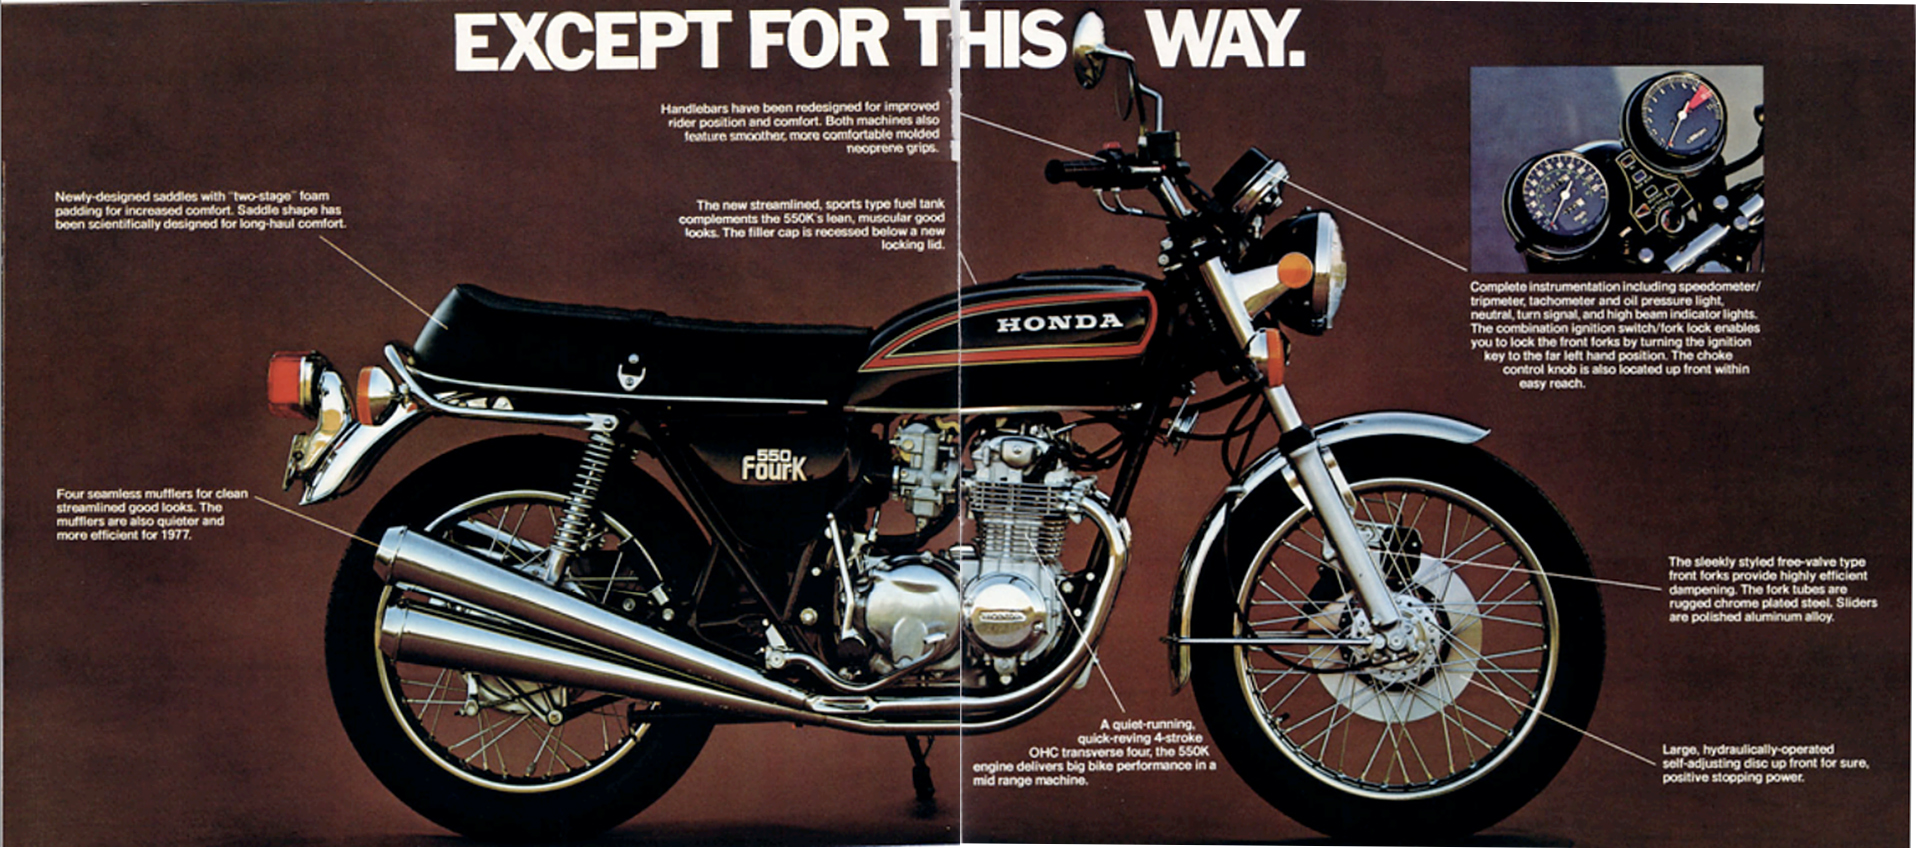 Vintage Honda Motorcycle Parts >> The Only Way To Go 4into1 Com Vintage Honda Motorcycle Parts Blog